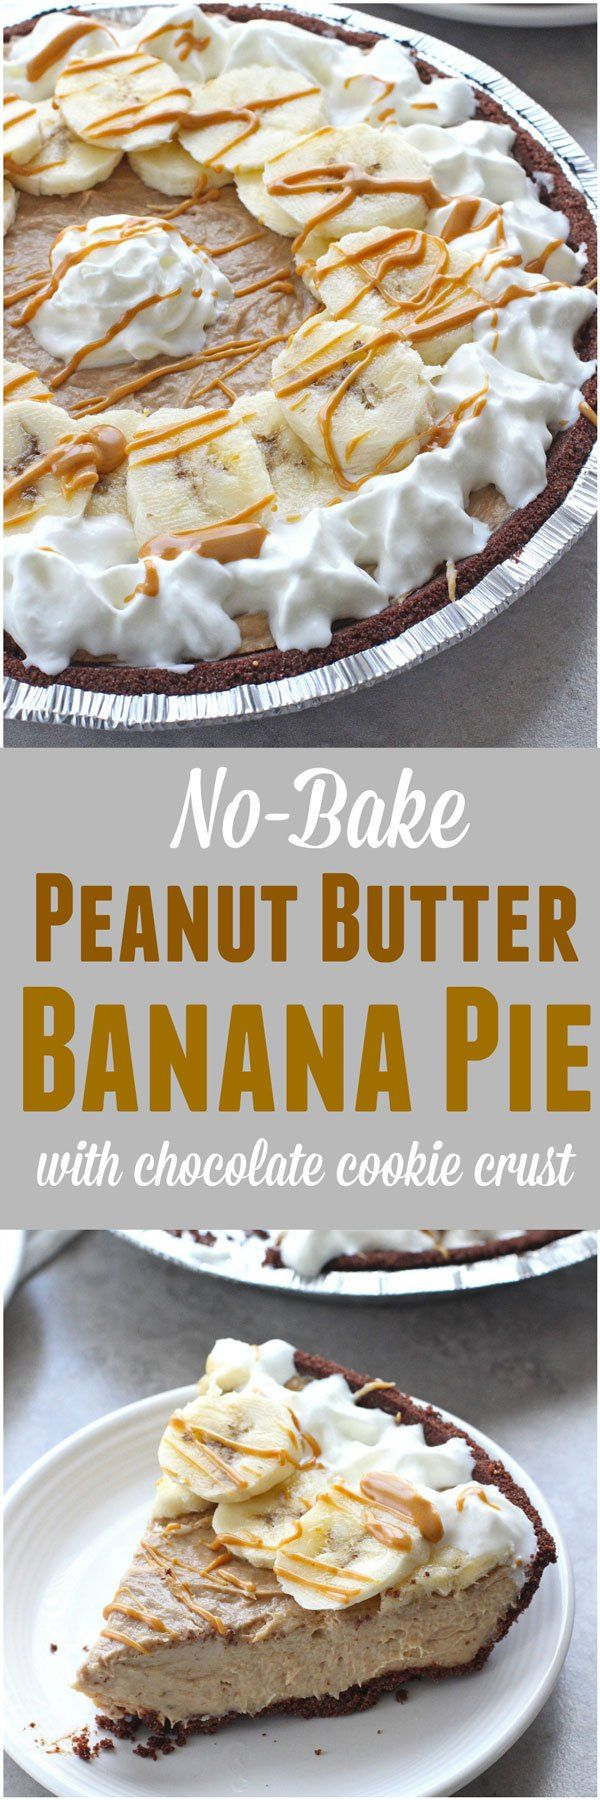 No-Bake Peanut Butter Banana Pie with Chocolate Cookie Crust - Katalyst Health #bananapie